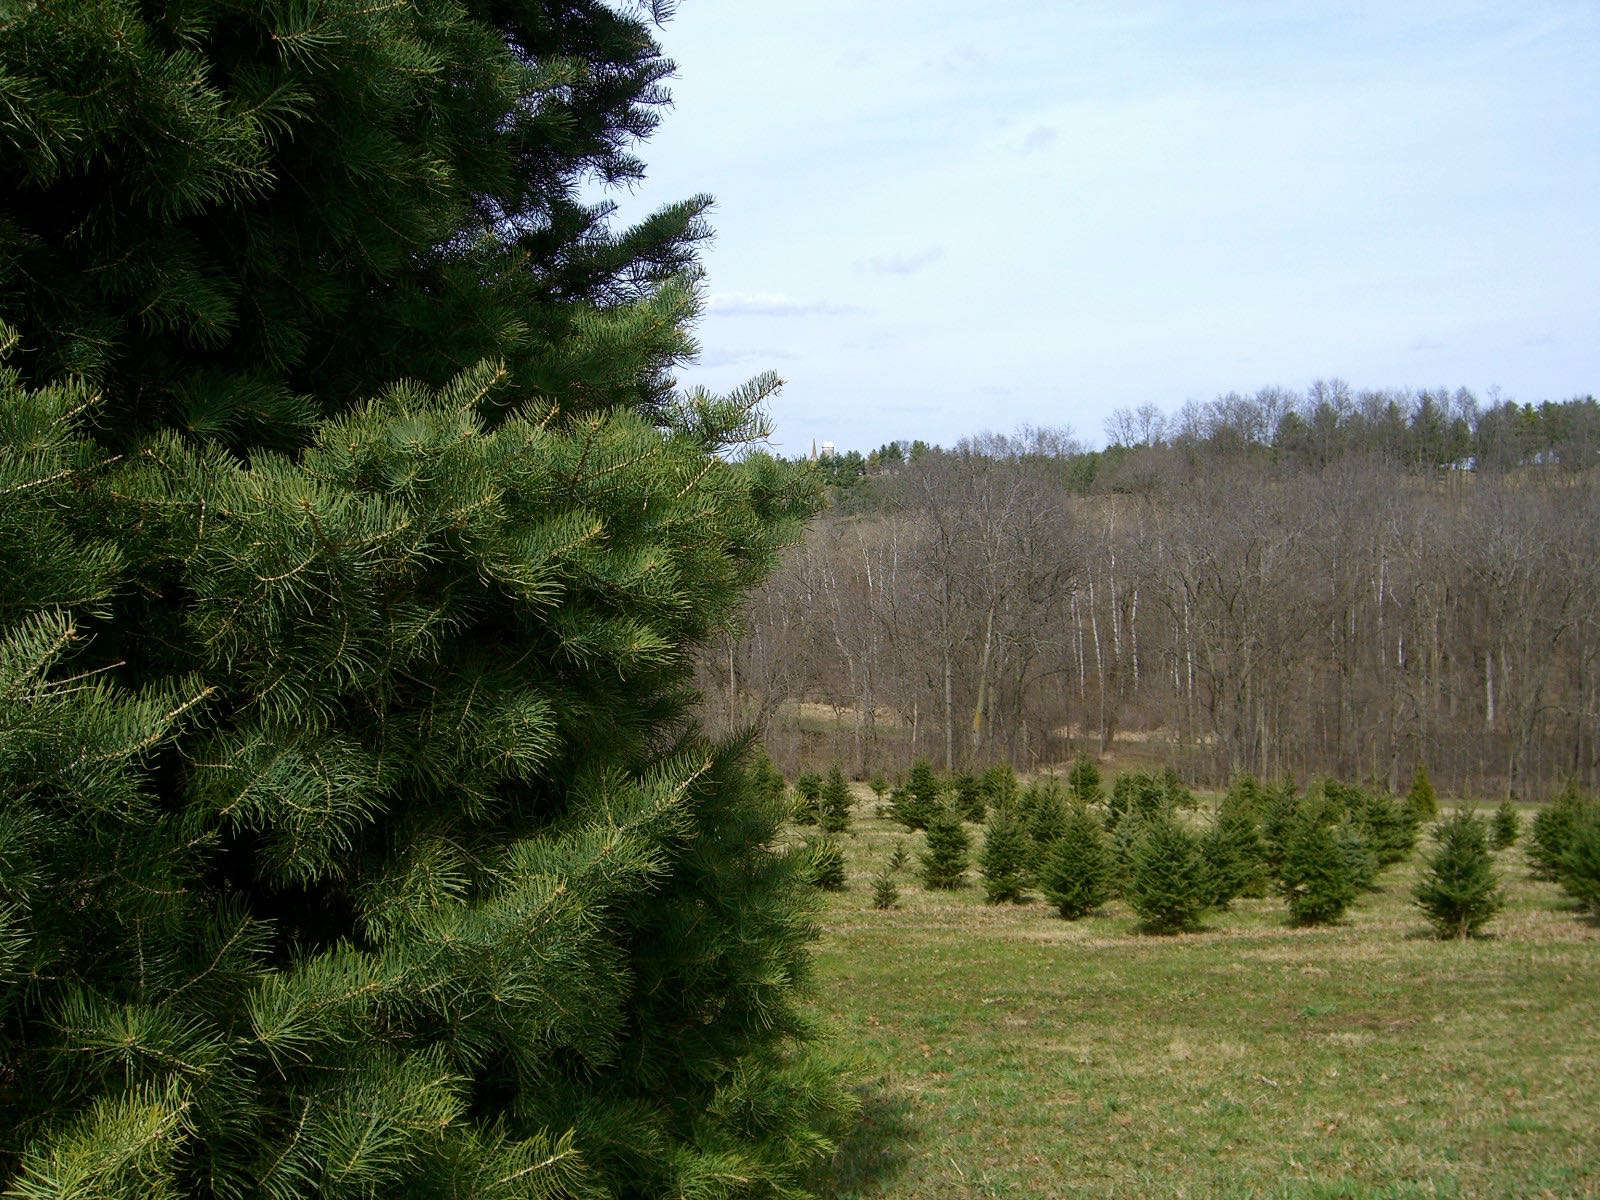 View of Christmas Trees at Docter Evergreens